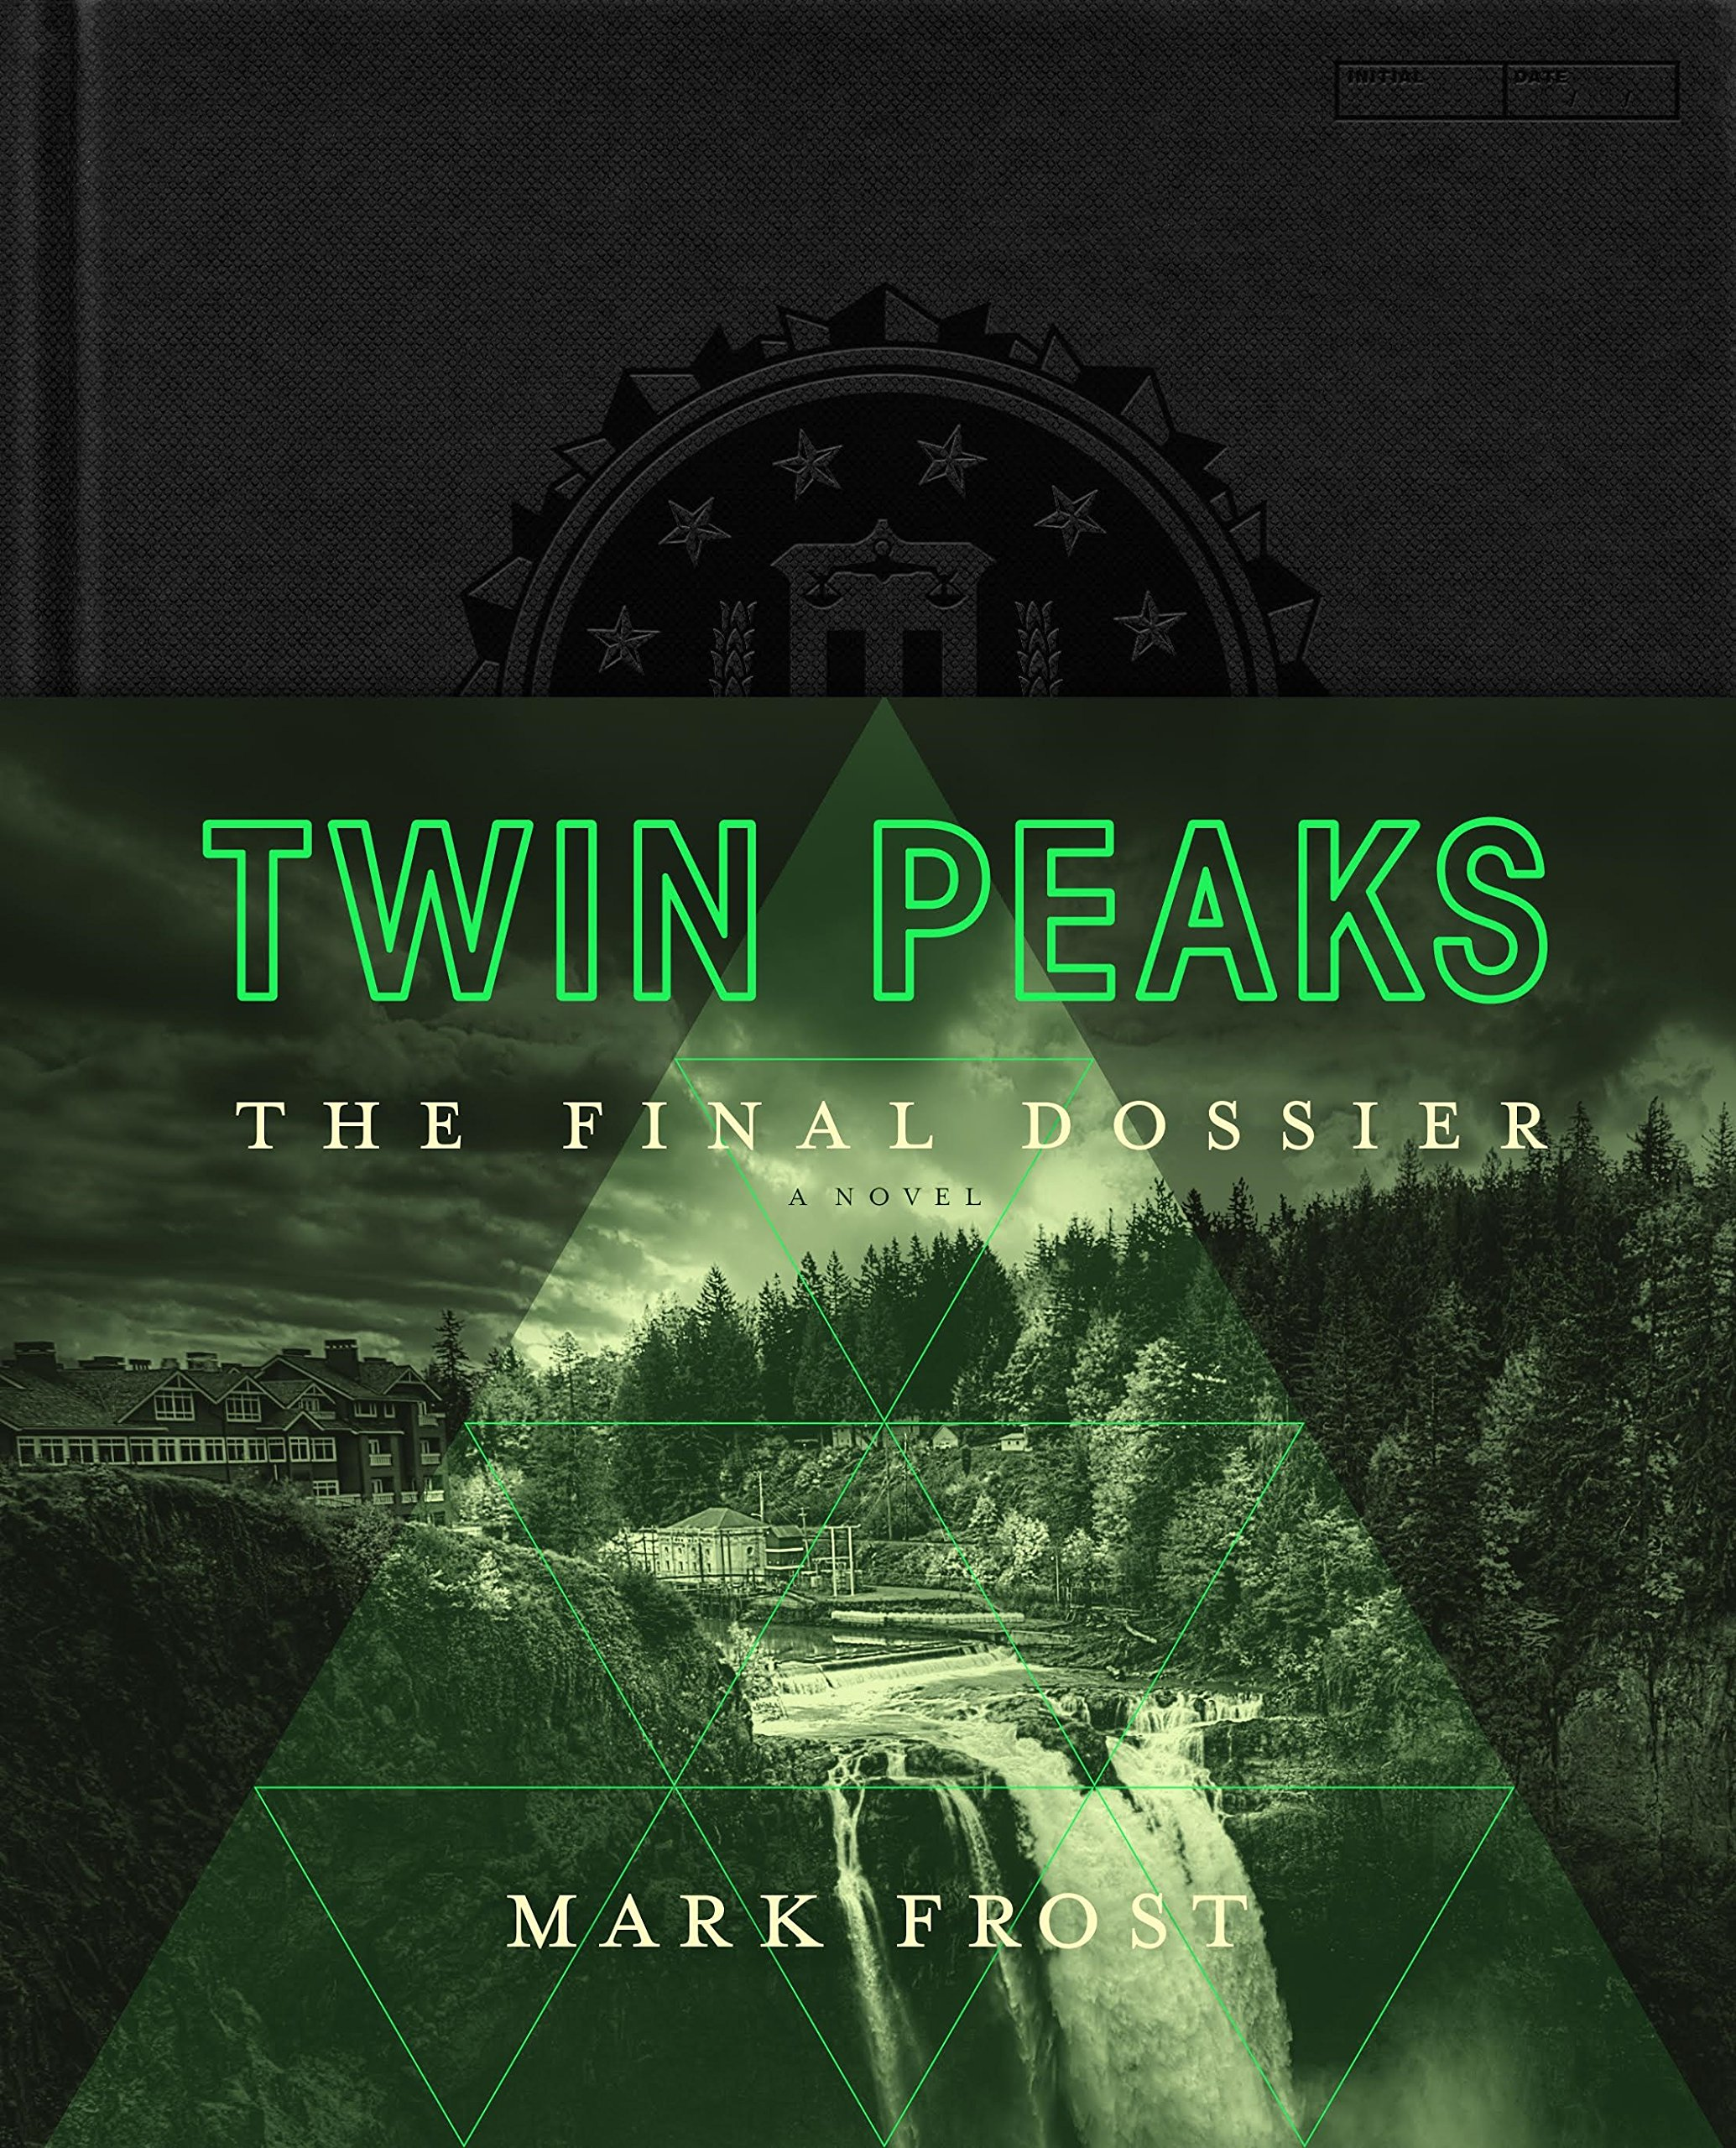 It is happening again again: <em>Twin Peaks: The Return</em> returns with new novel from co-creator Mark Frost